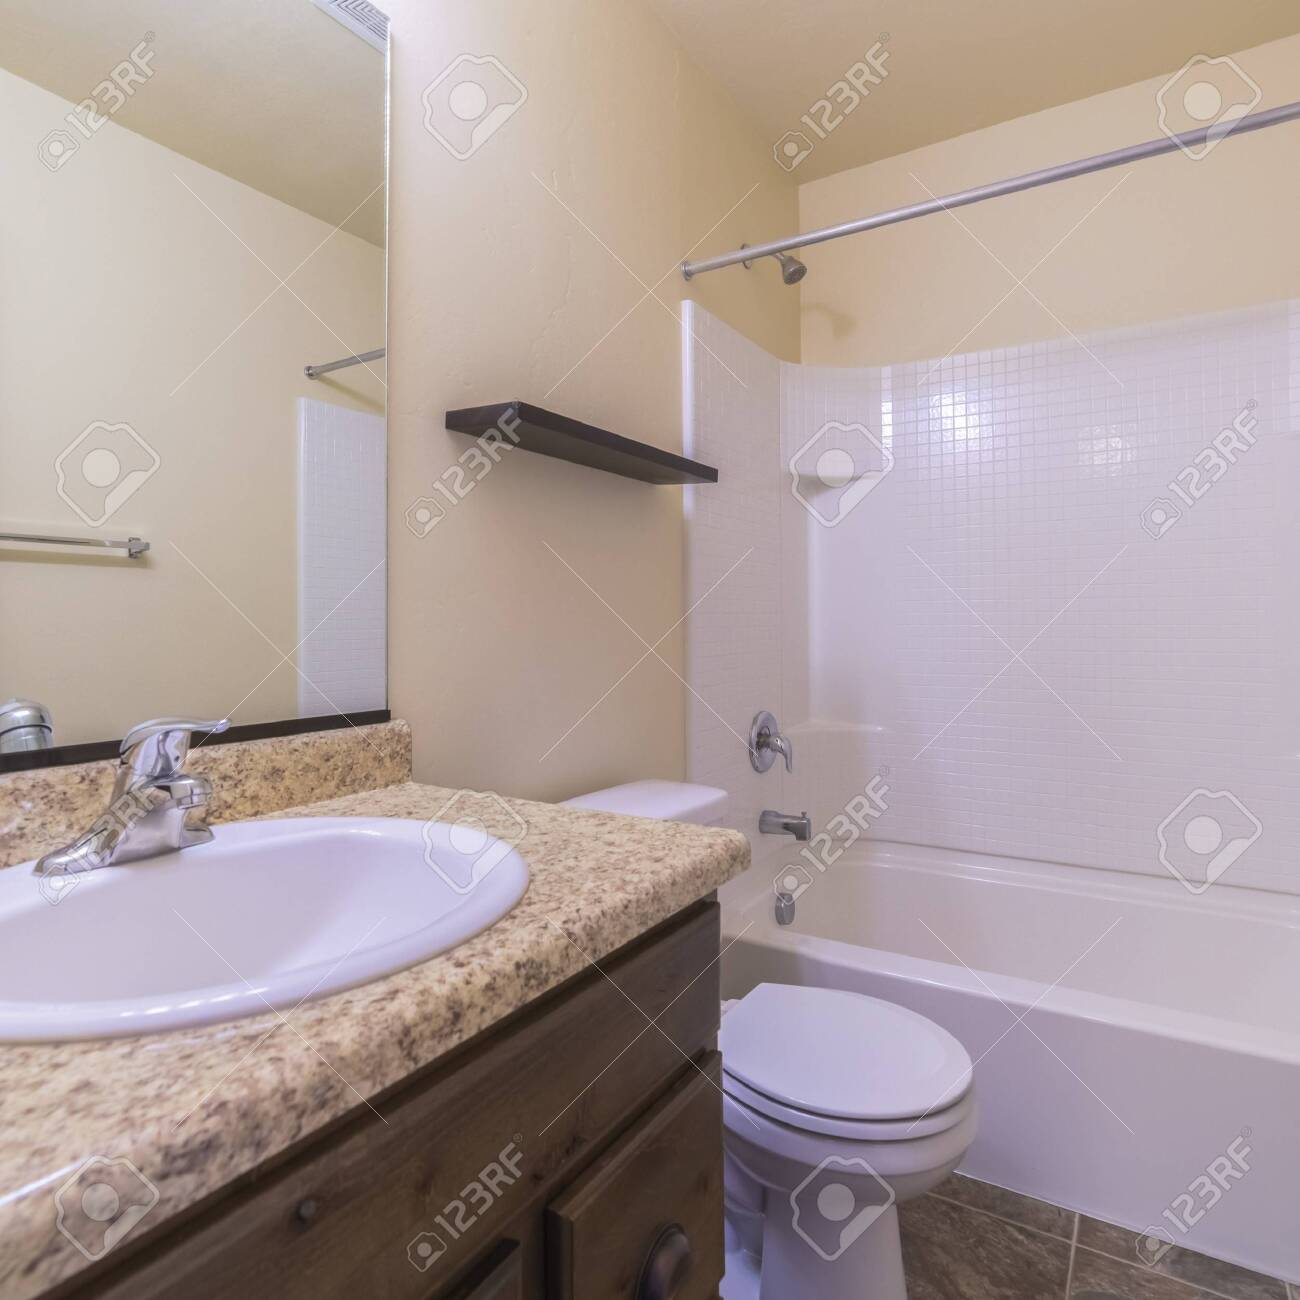 Square Frame Small Modern Bathroom Interior With Marble Vanity Stock Photo Picture And Royalty Free Image Image 137169919